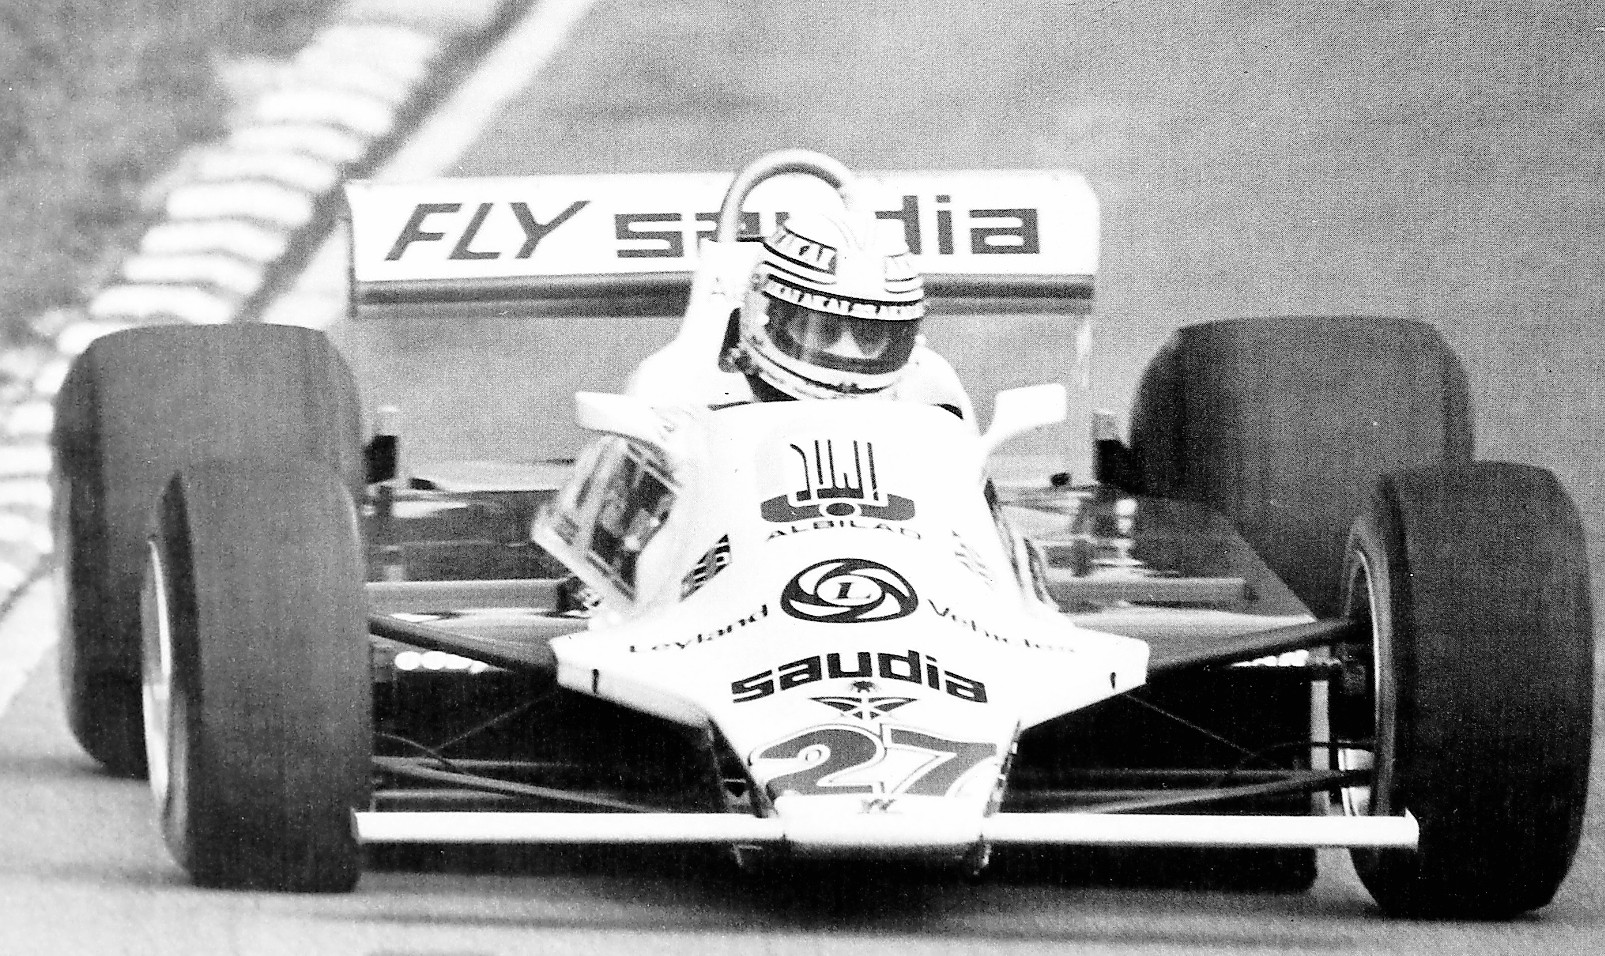 El Williams FW 07 B que permitió a Alan Jones demostar su valía. / El Norte/